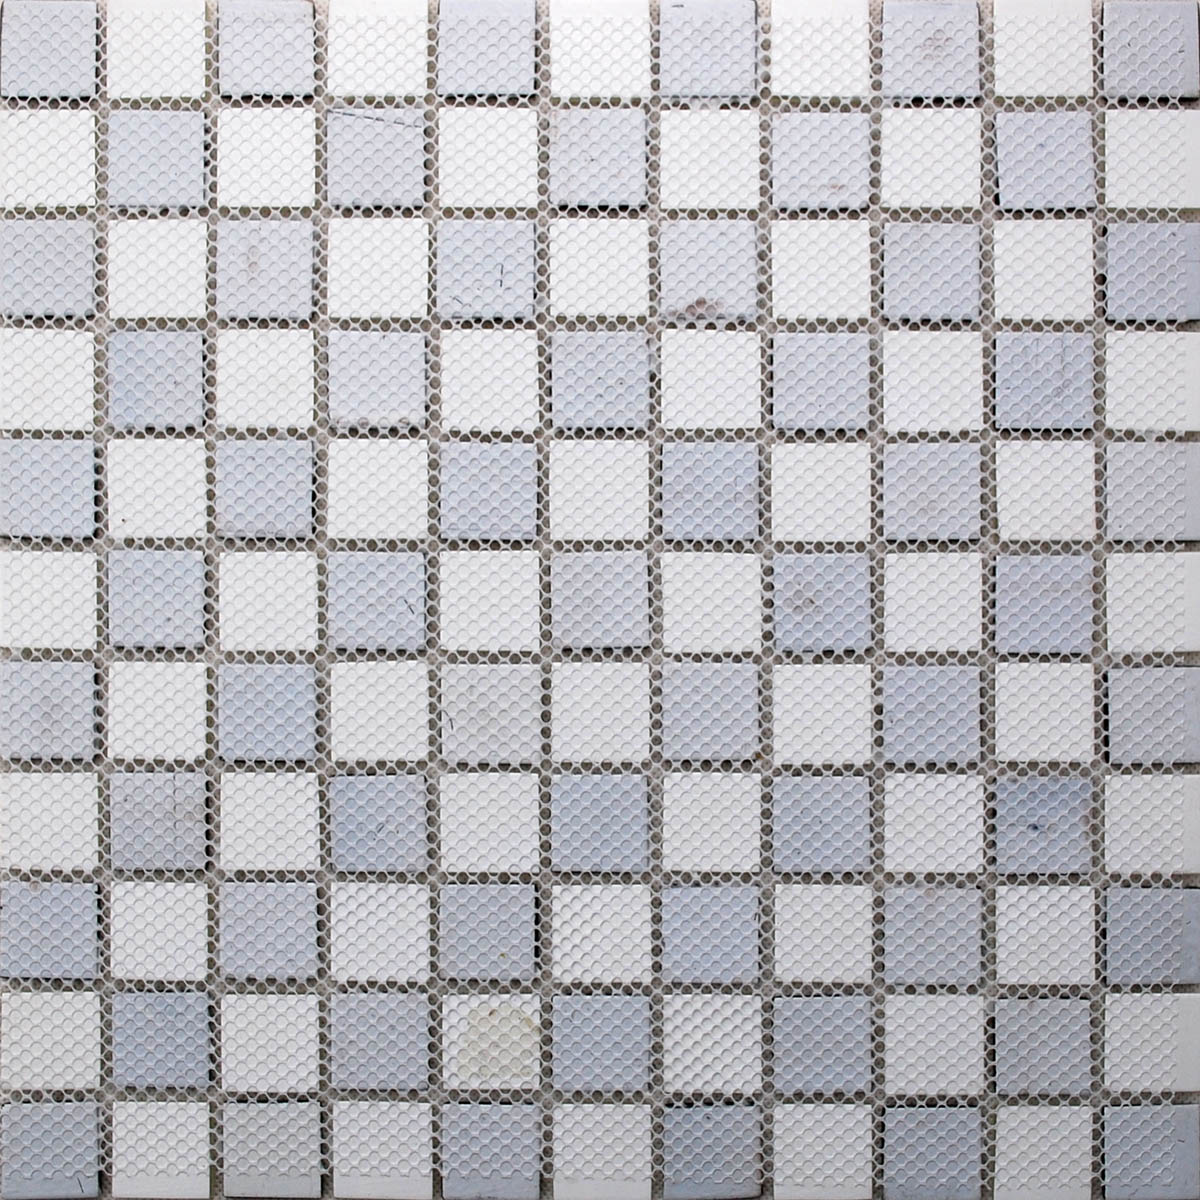 Wholesale Vitreous Mosaic Tile Crystal Glass Backsplash Washroom ...